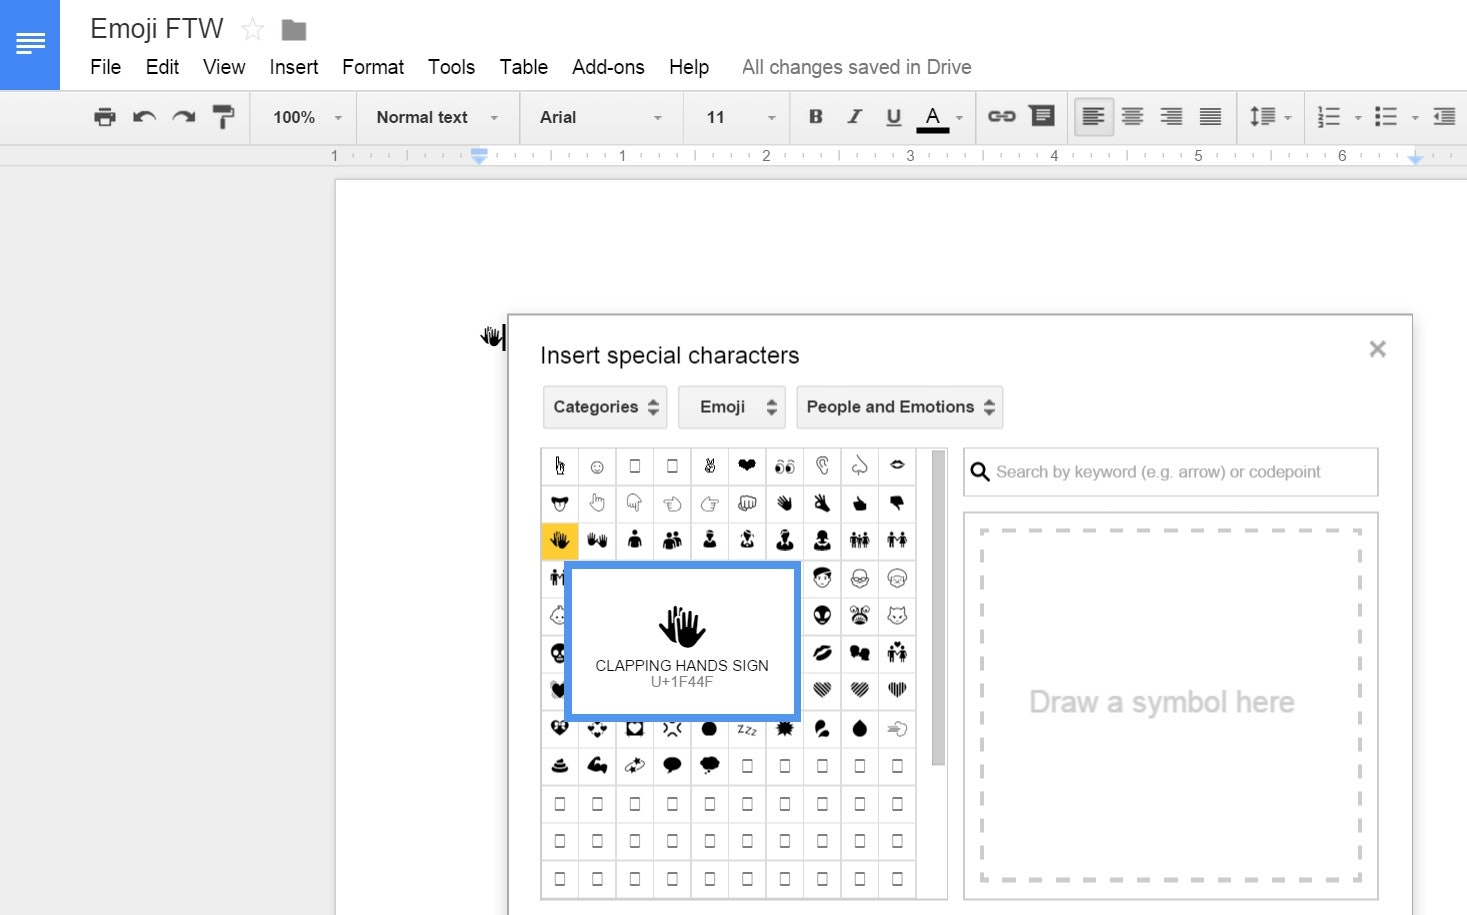 How To Use Emoji In Google Drive, Because Somewhat